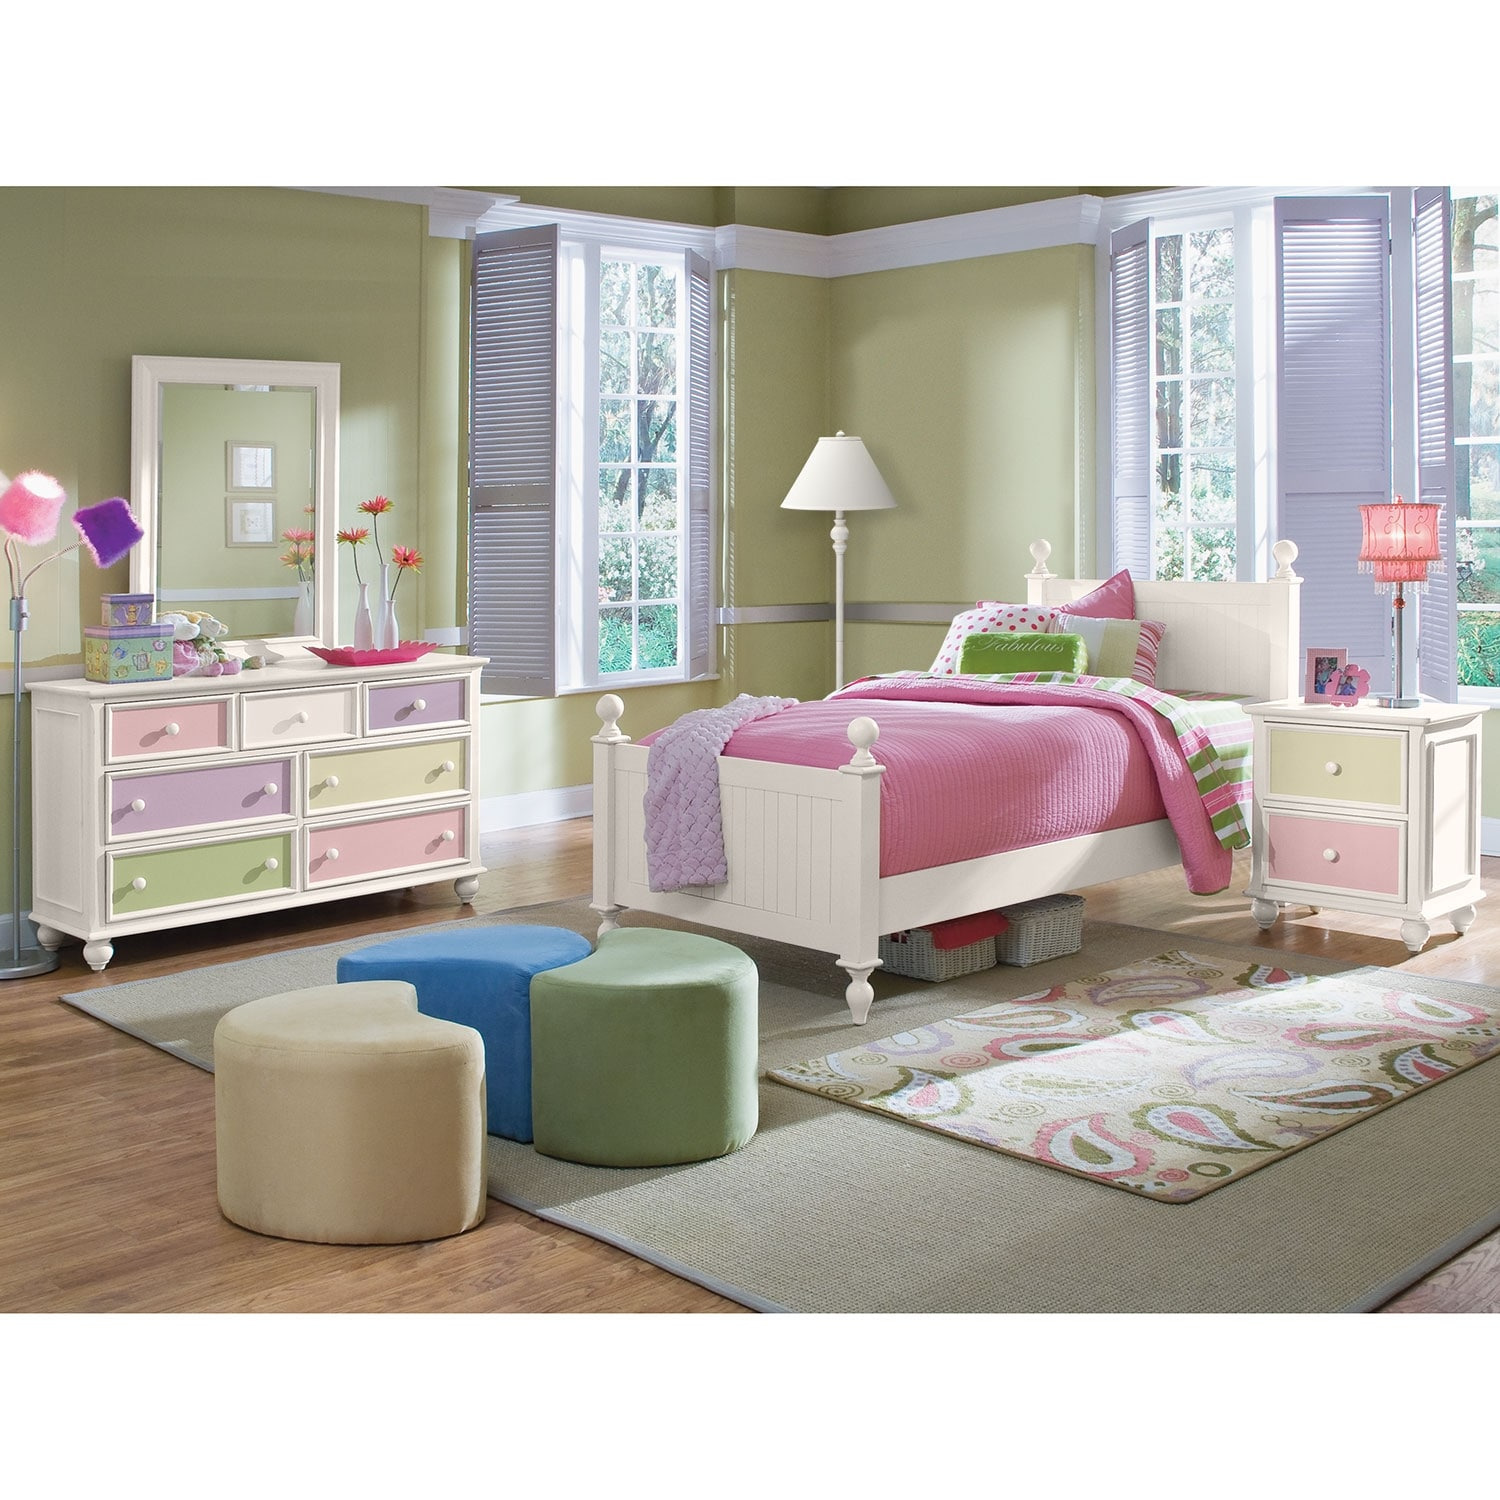 Bedroom Furniture White: Colorworks 6-Piece Full Bedroom Set - White